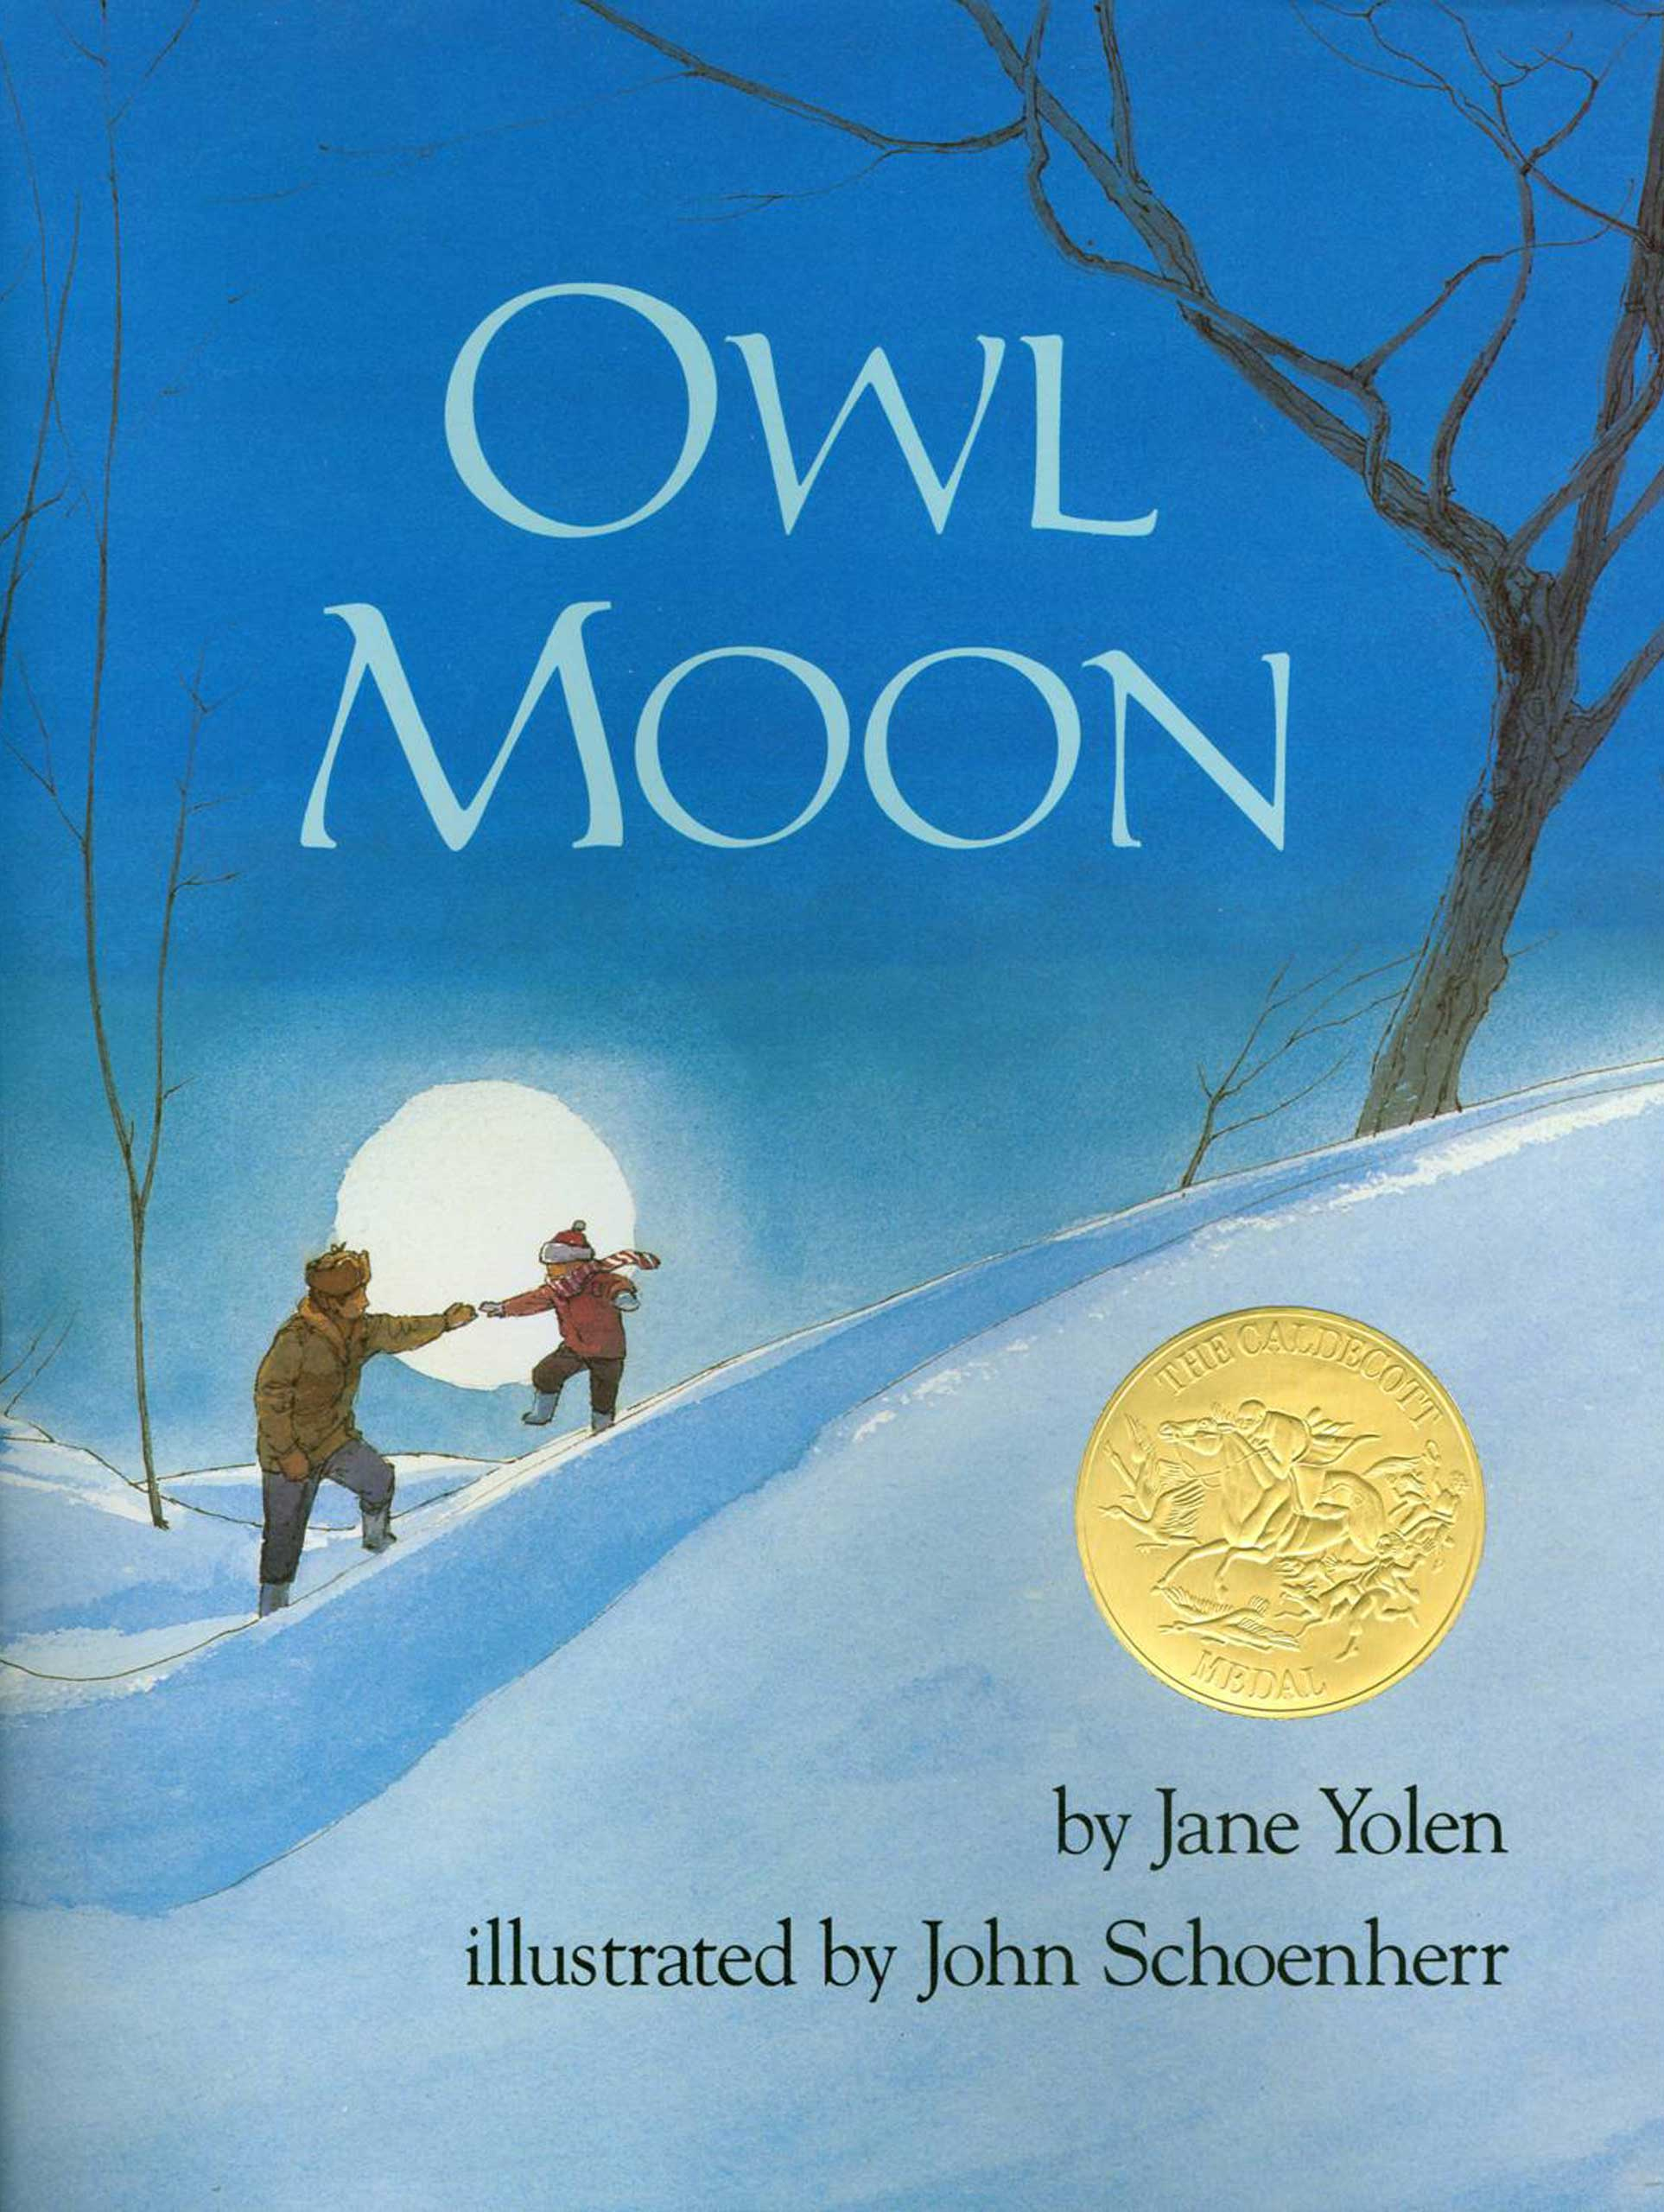 Owl Moon, by Jane Yolen, illustrations by John Schoenherr.                                                                                                                            Many young bird watchers likely owe their passion to this story of a father-daughter trip to find the elusive great horned owl takes flight thanks to Schoenherr's evocative woods-at-night illustrations.                                                                                                                            Buy now: Owl Moon